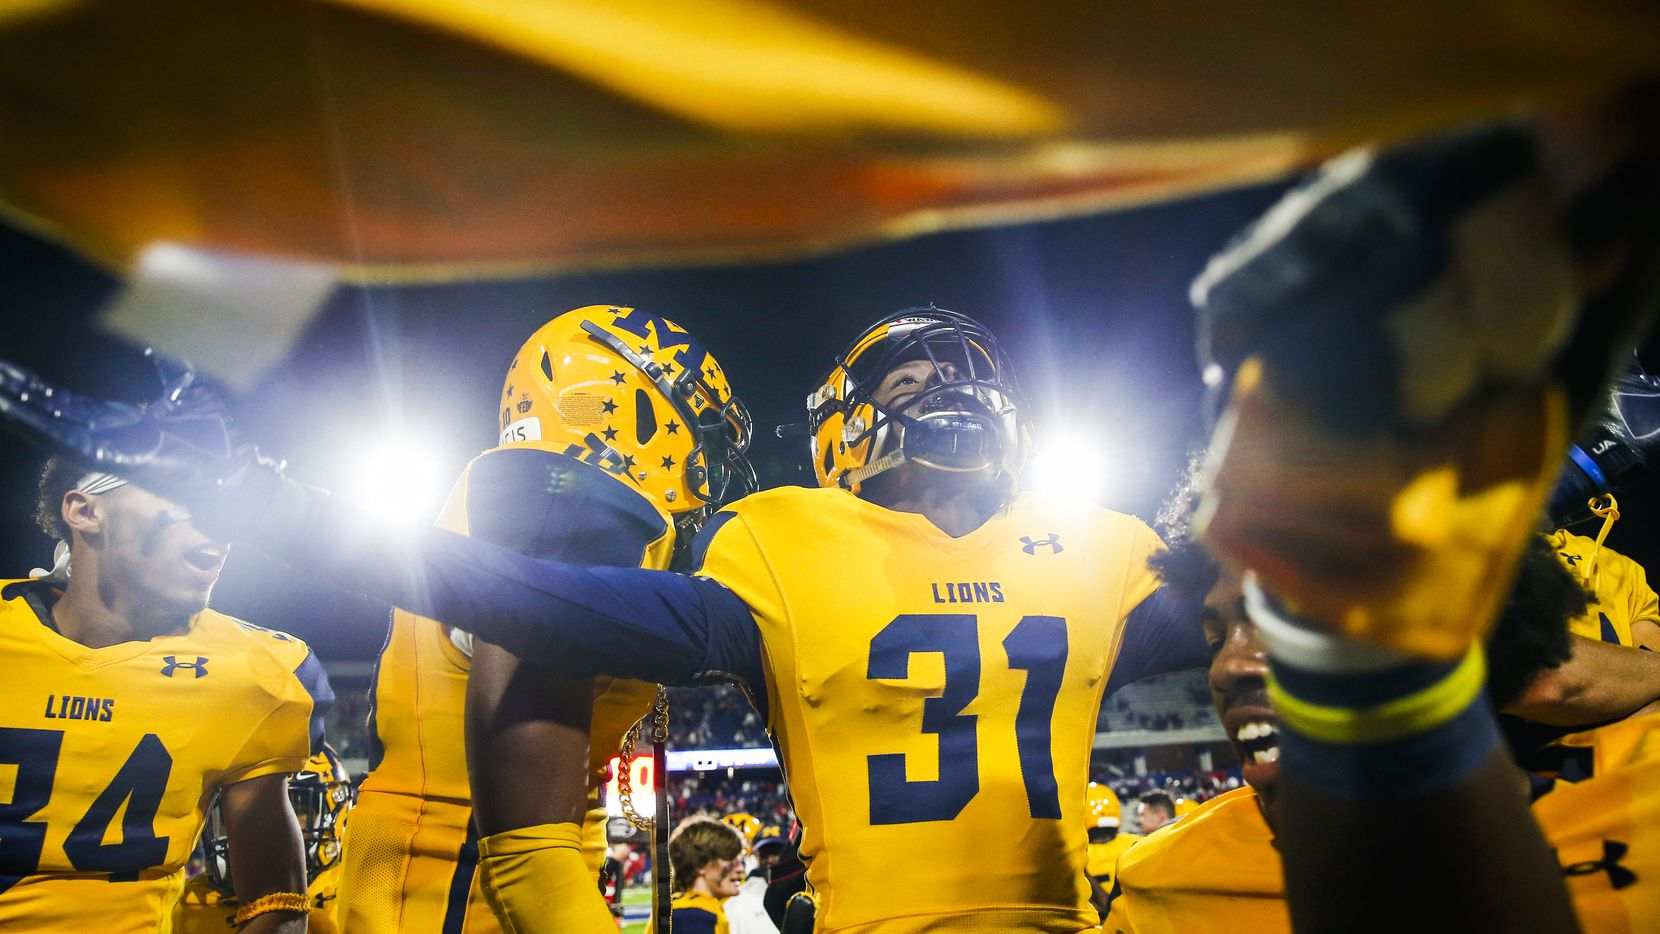 McKinney players celebrate in the final moments of their win over McKinney Boyd during a high school football matchup at McKinney ISD Stadium on Friday, Nov. 8, 2019 in McKinney, Texas. (Ryan Michalesko/The Dallas Morning News)